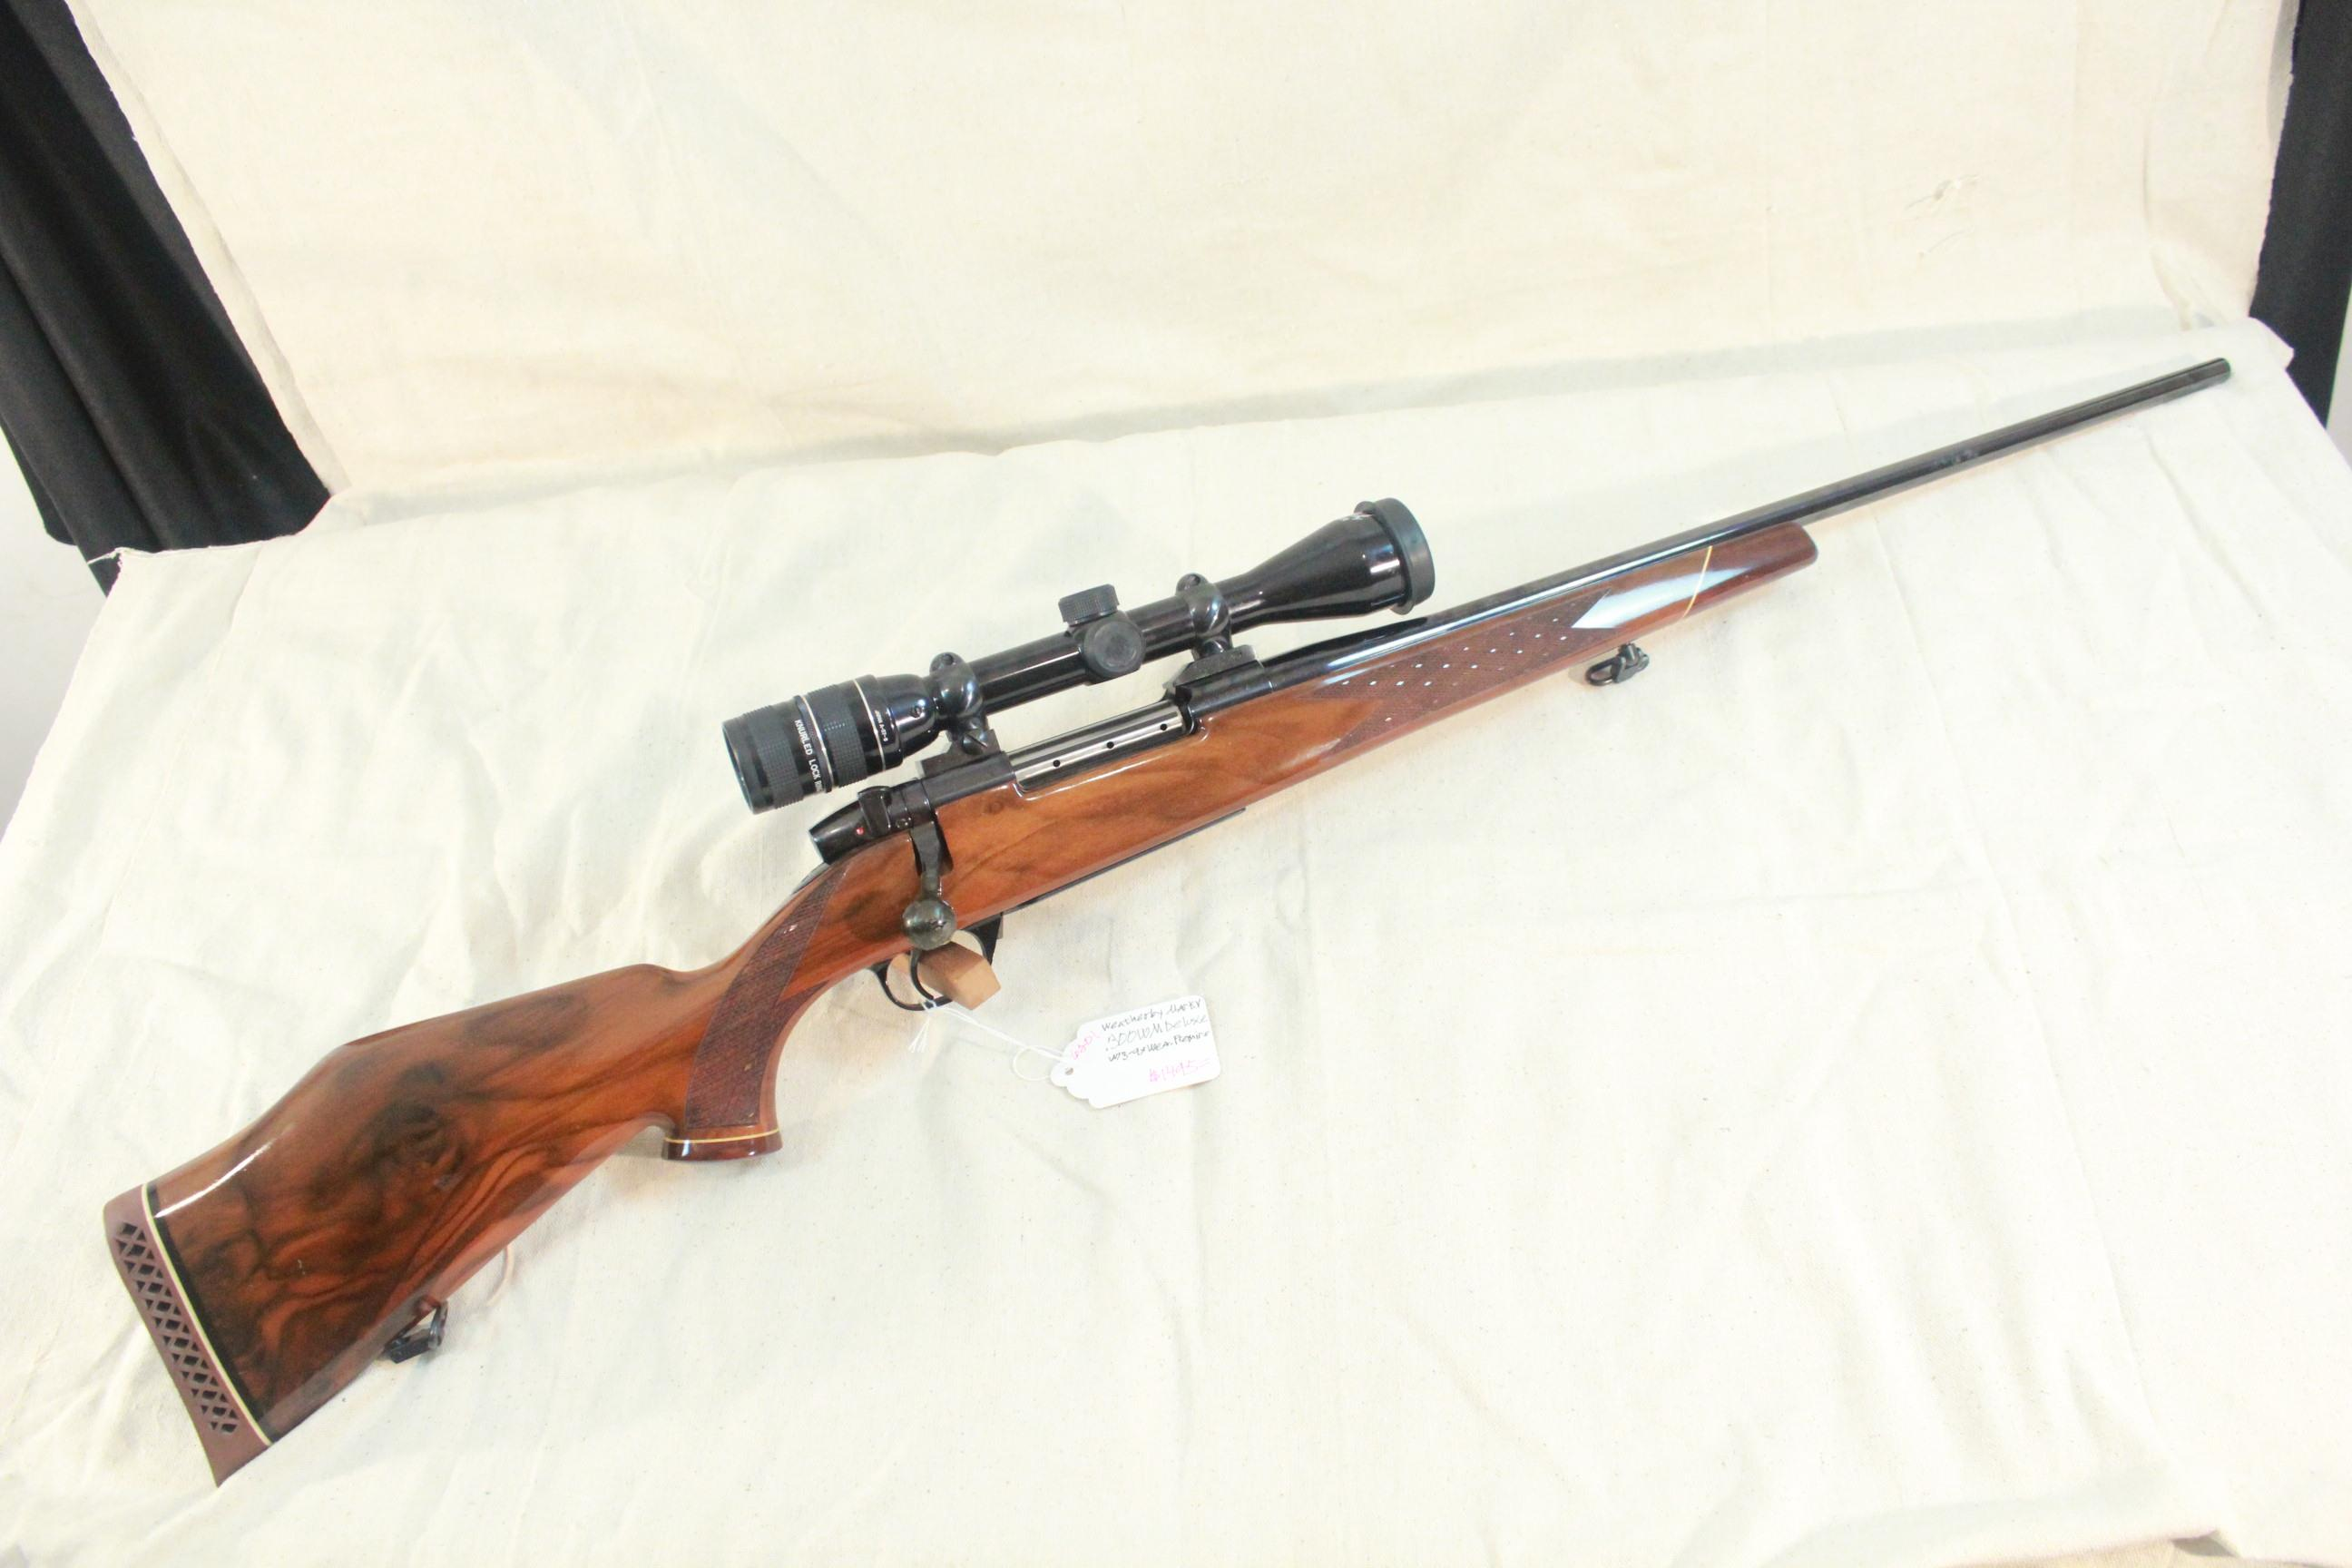 Weatherby Mark V Deluxe in .300 WM with 3-9x Weatherby Premier Widefield Duplex Scope  Guns > Rifles > Weatherby Rifles > Sporting